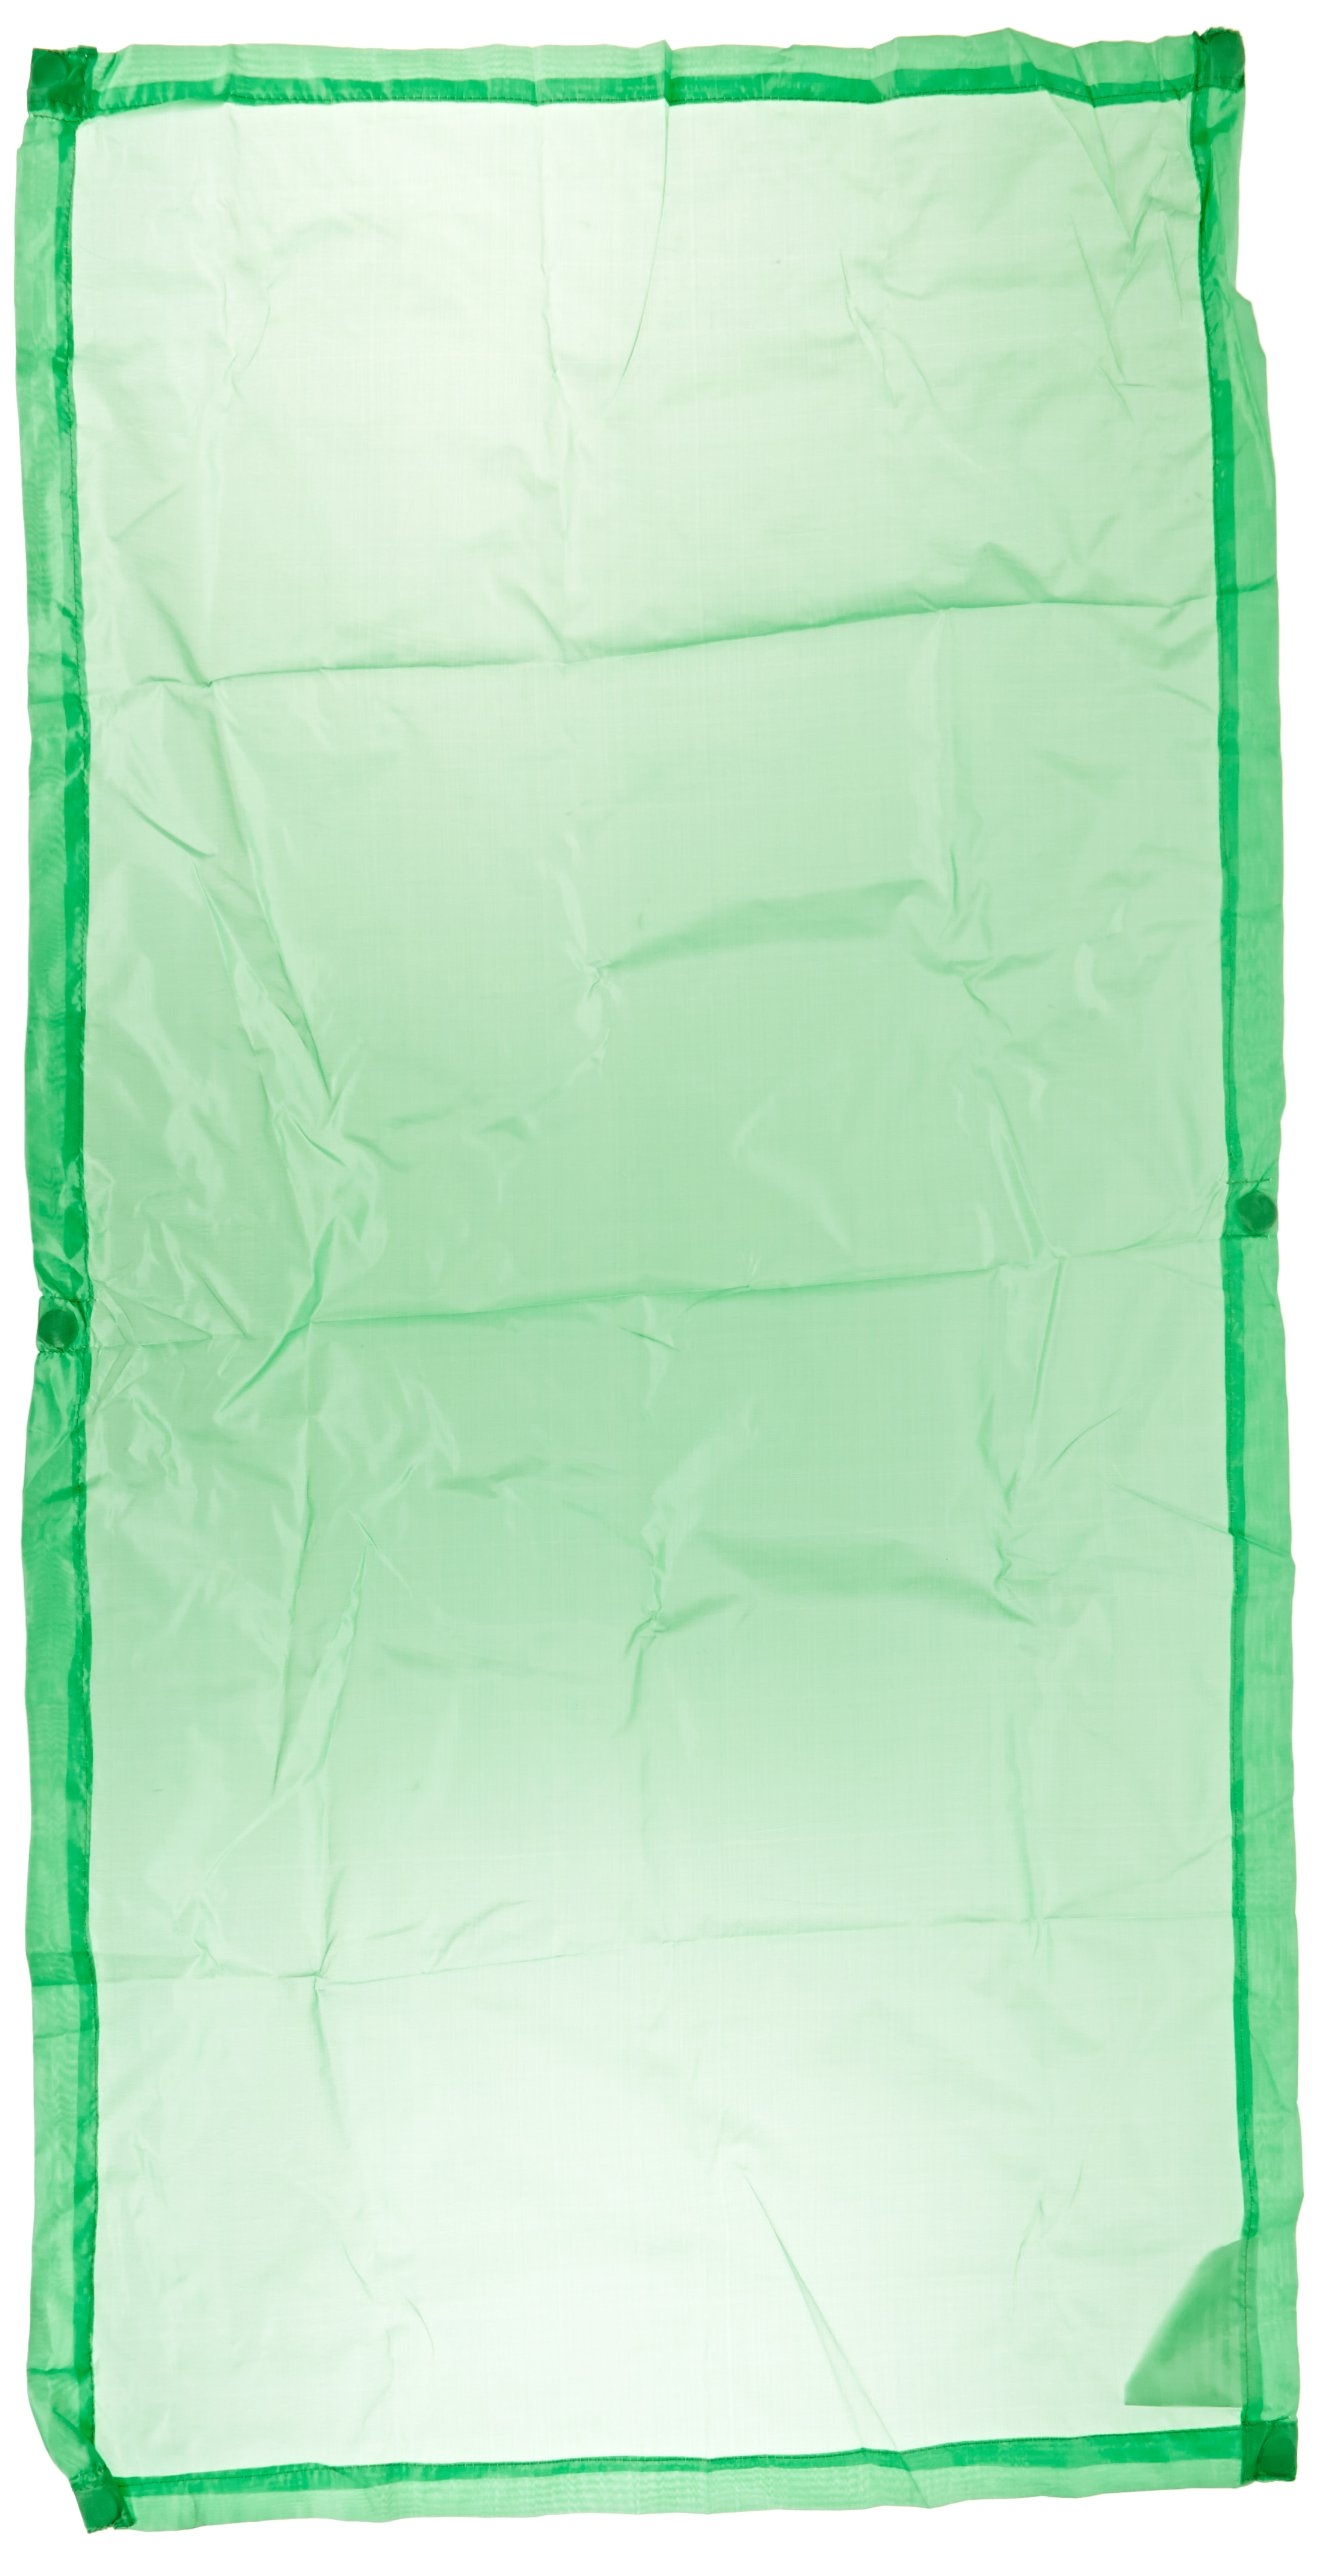 Abilitations Cozy Shades Softening Light Filters - 54 x 24 inches - Pack of 4 - Green by Abilitations